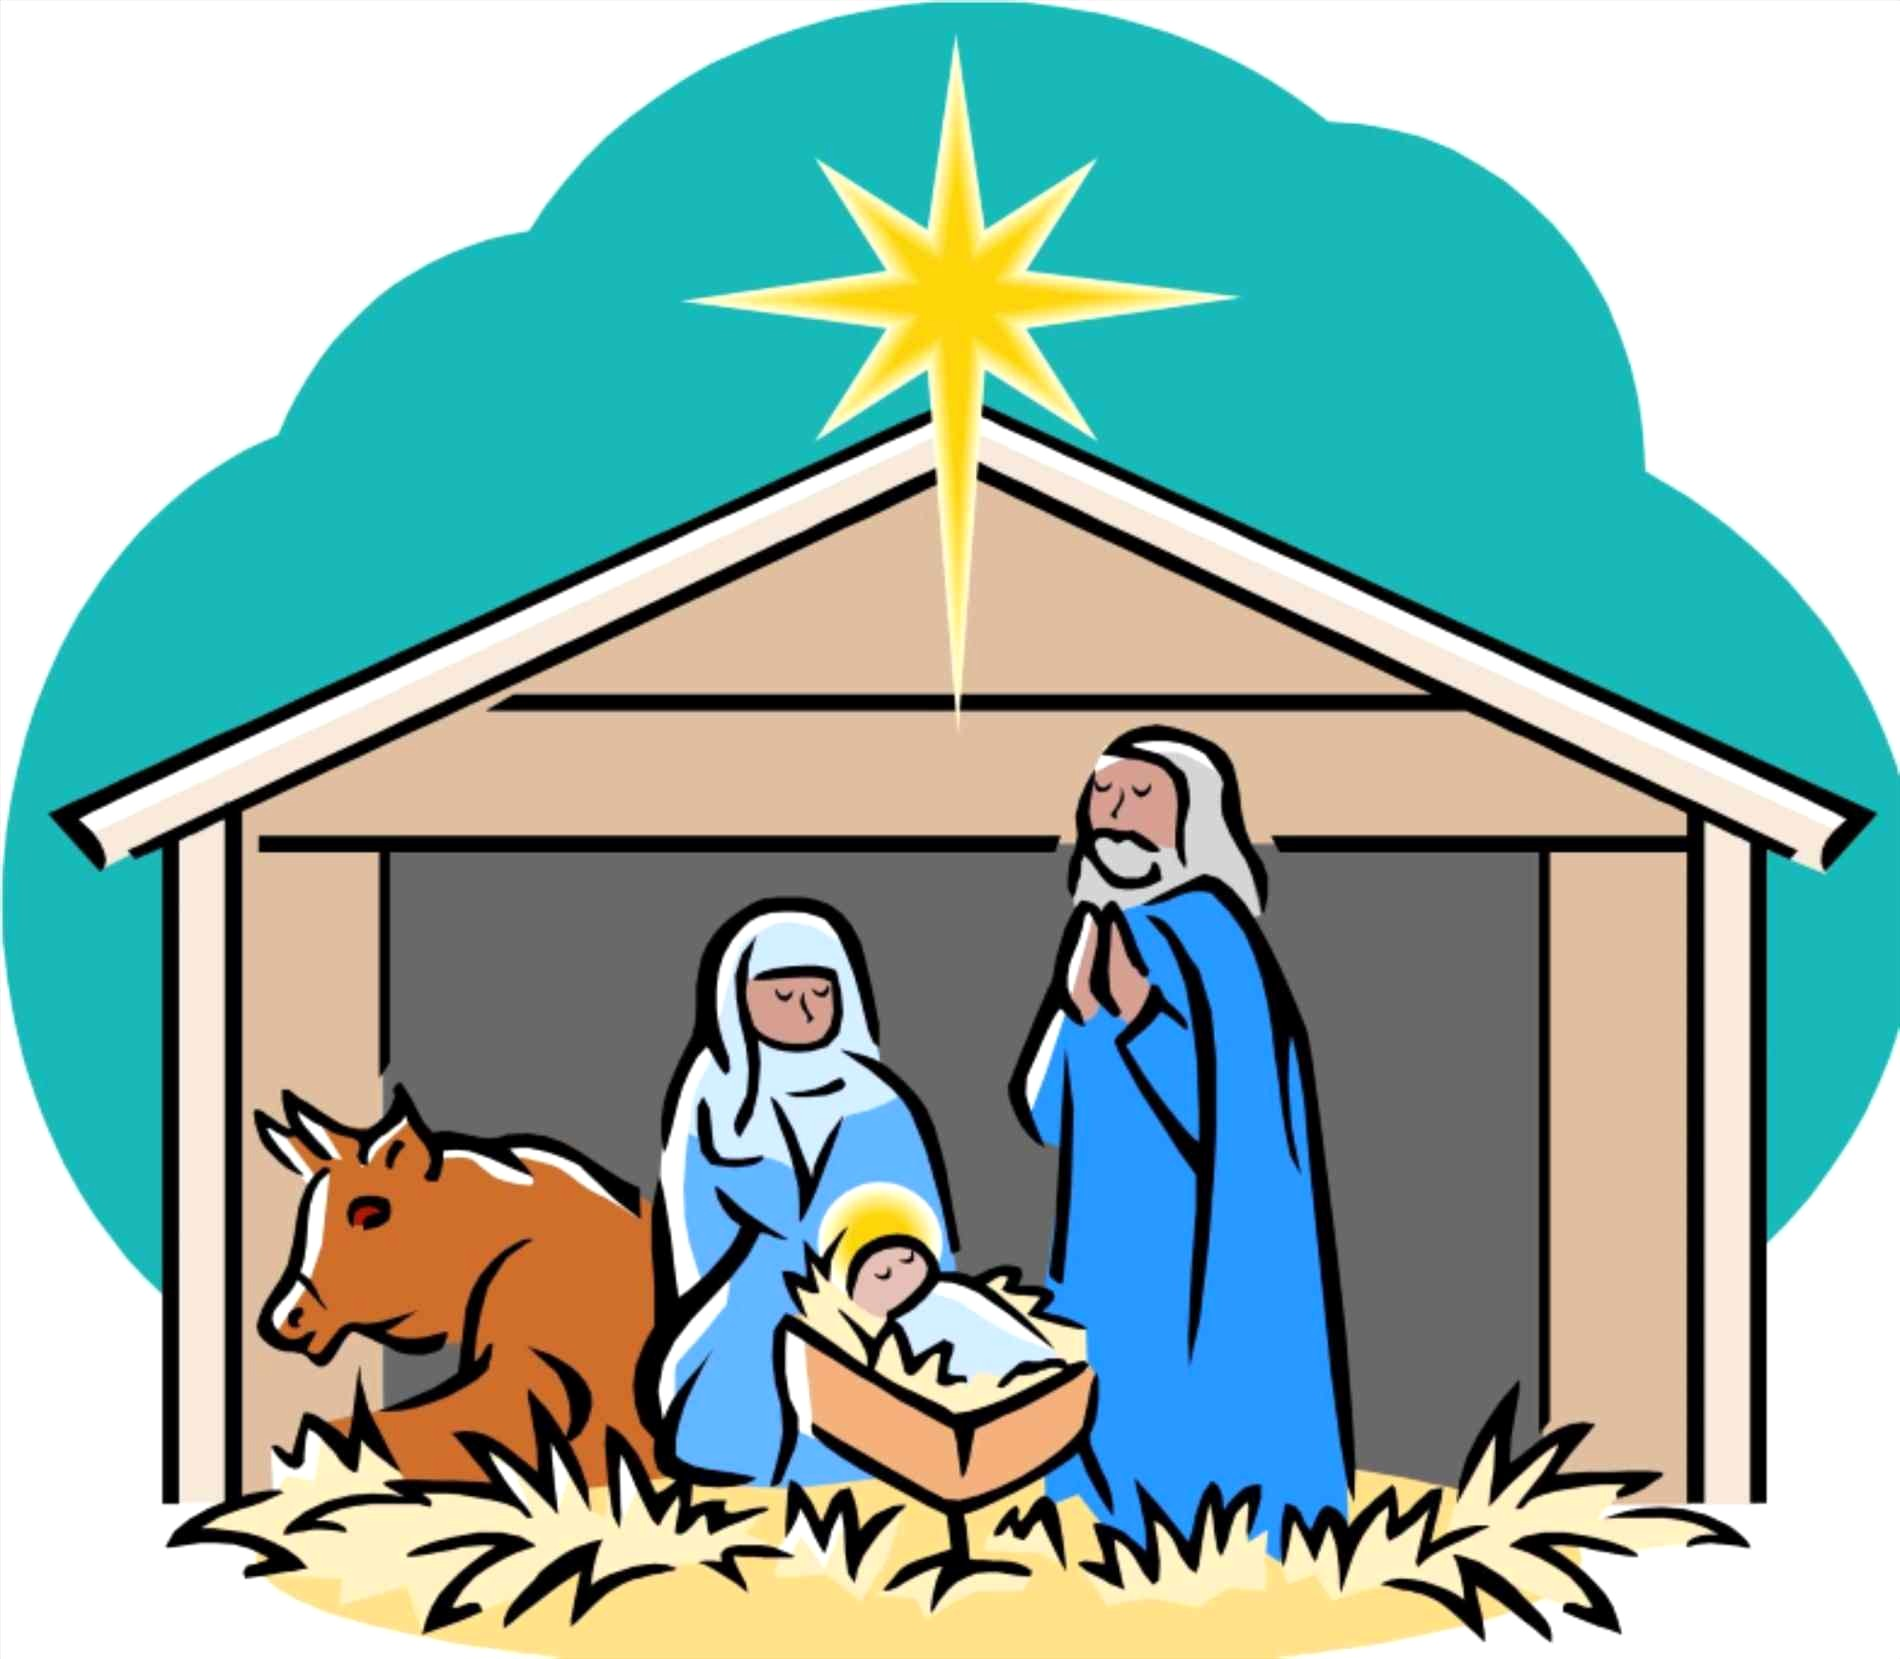 Nativity scene clipart free 4 » Clipart Station.